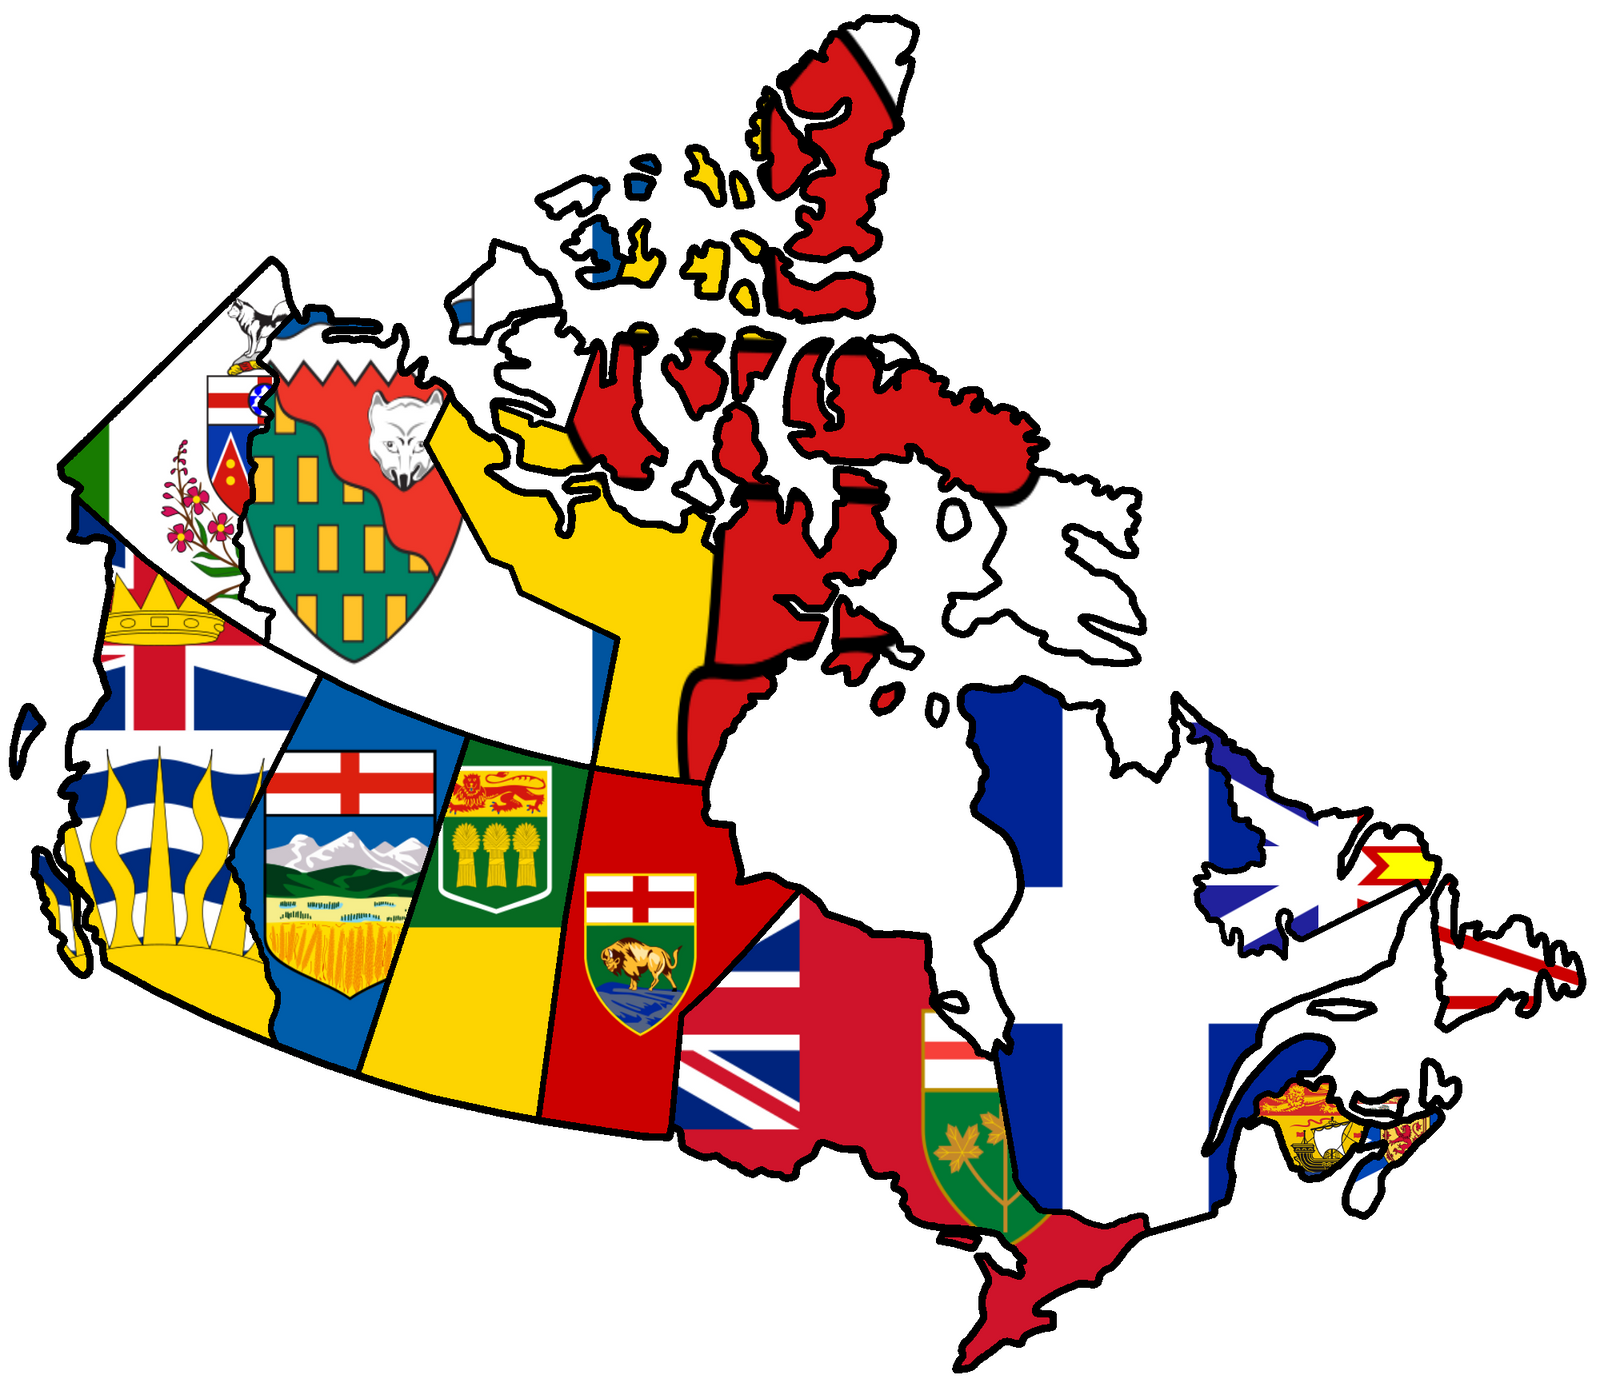 Canadian Provinces Flag Map by HeerSander on DeviantArt – Map of the Canadian Provinces